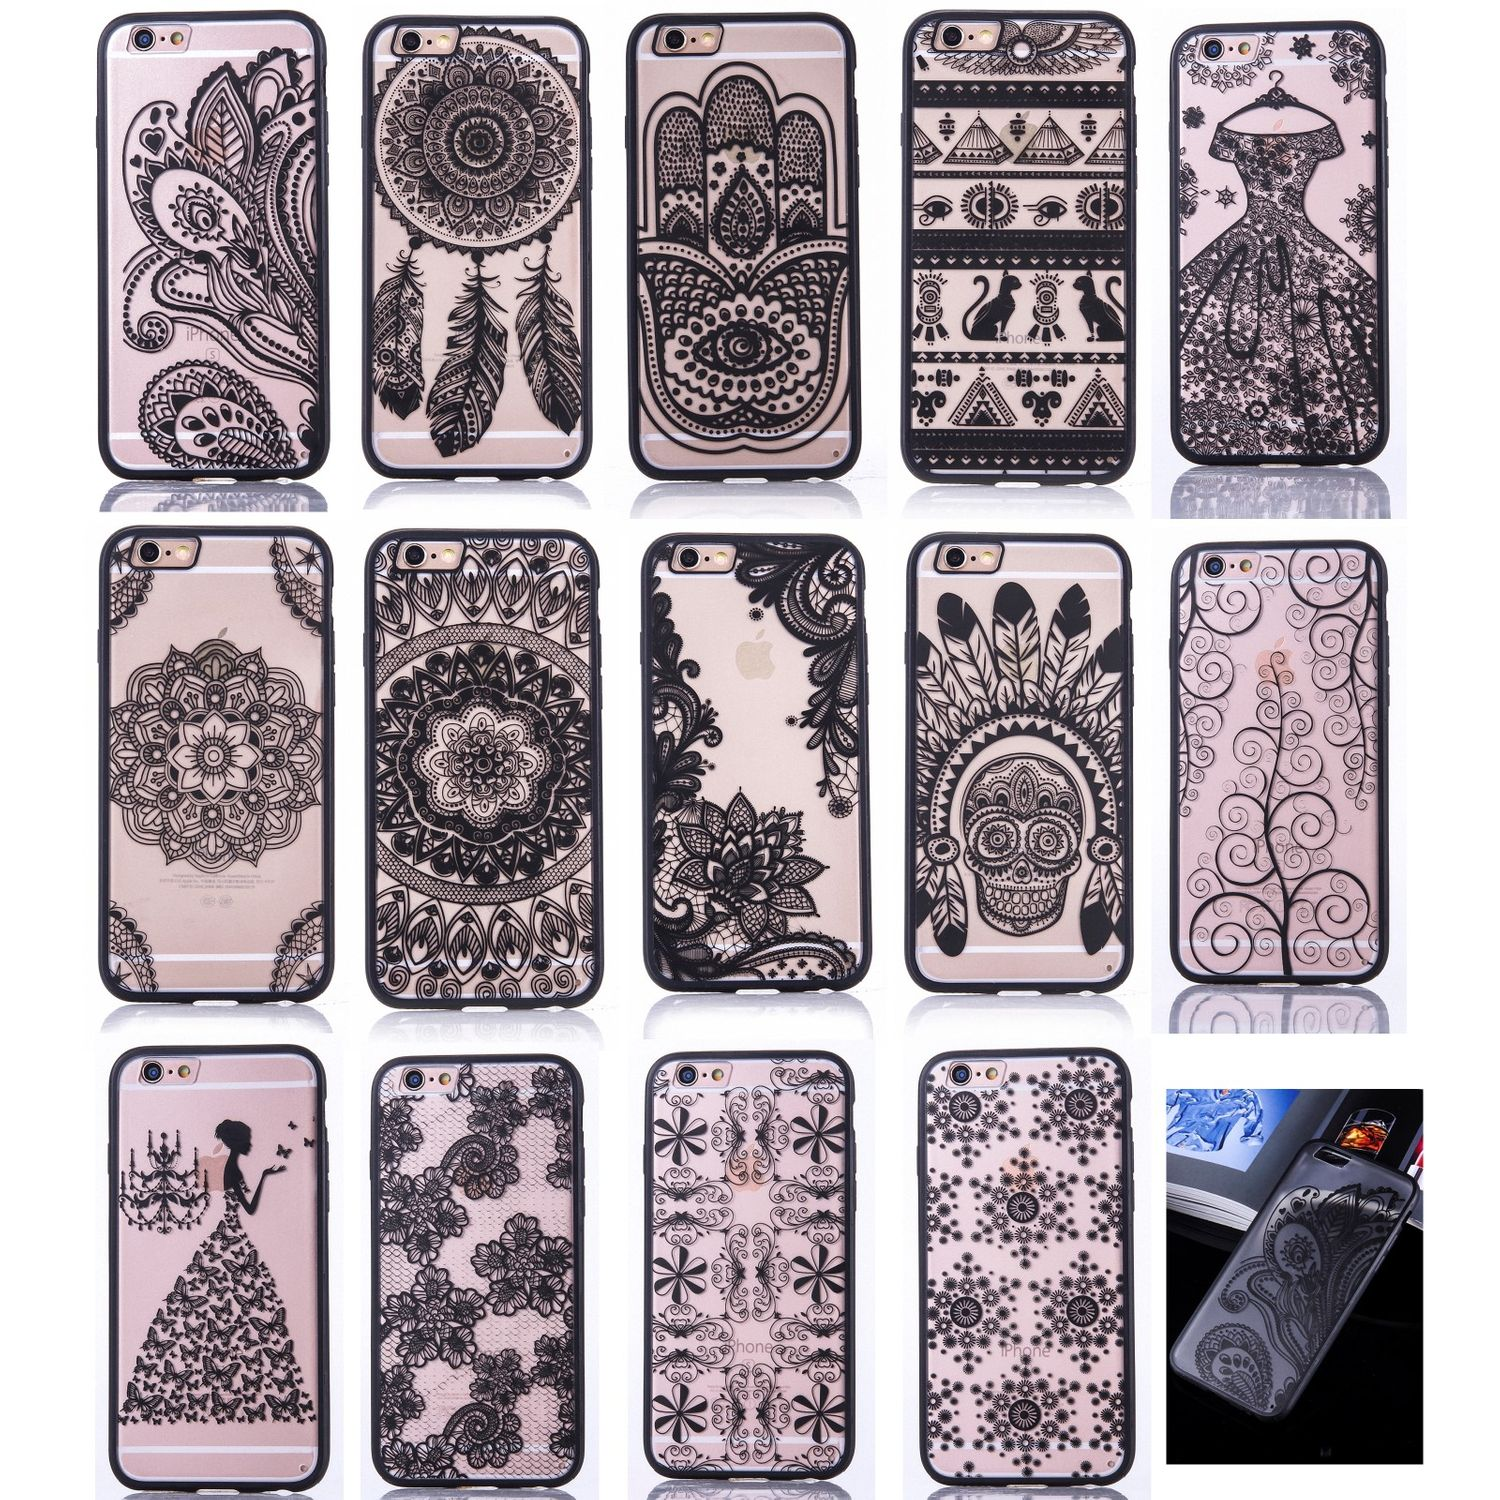 low priced 7b643 868b2 Details about Henna Cover Cell Phone Sleeve Case Cover Bumper Bag Indian  Sun Mandala